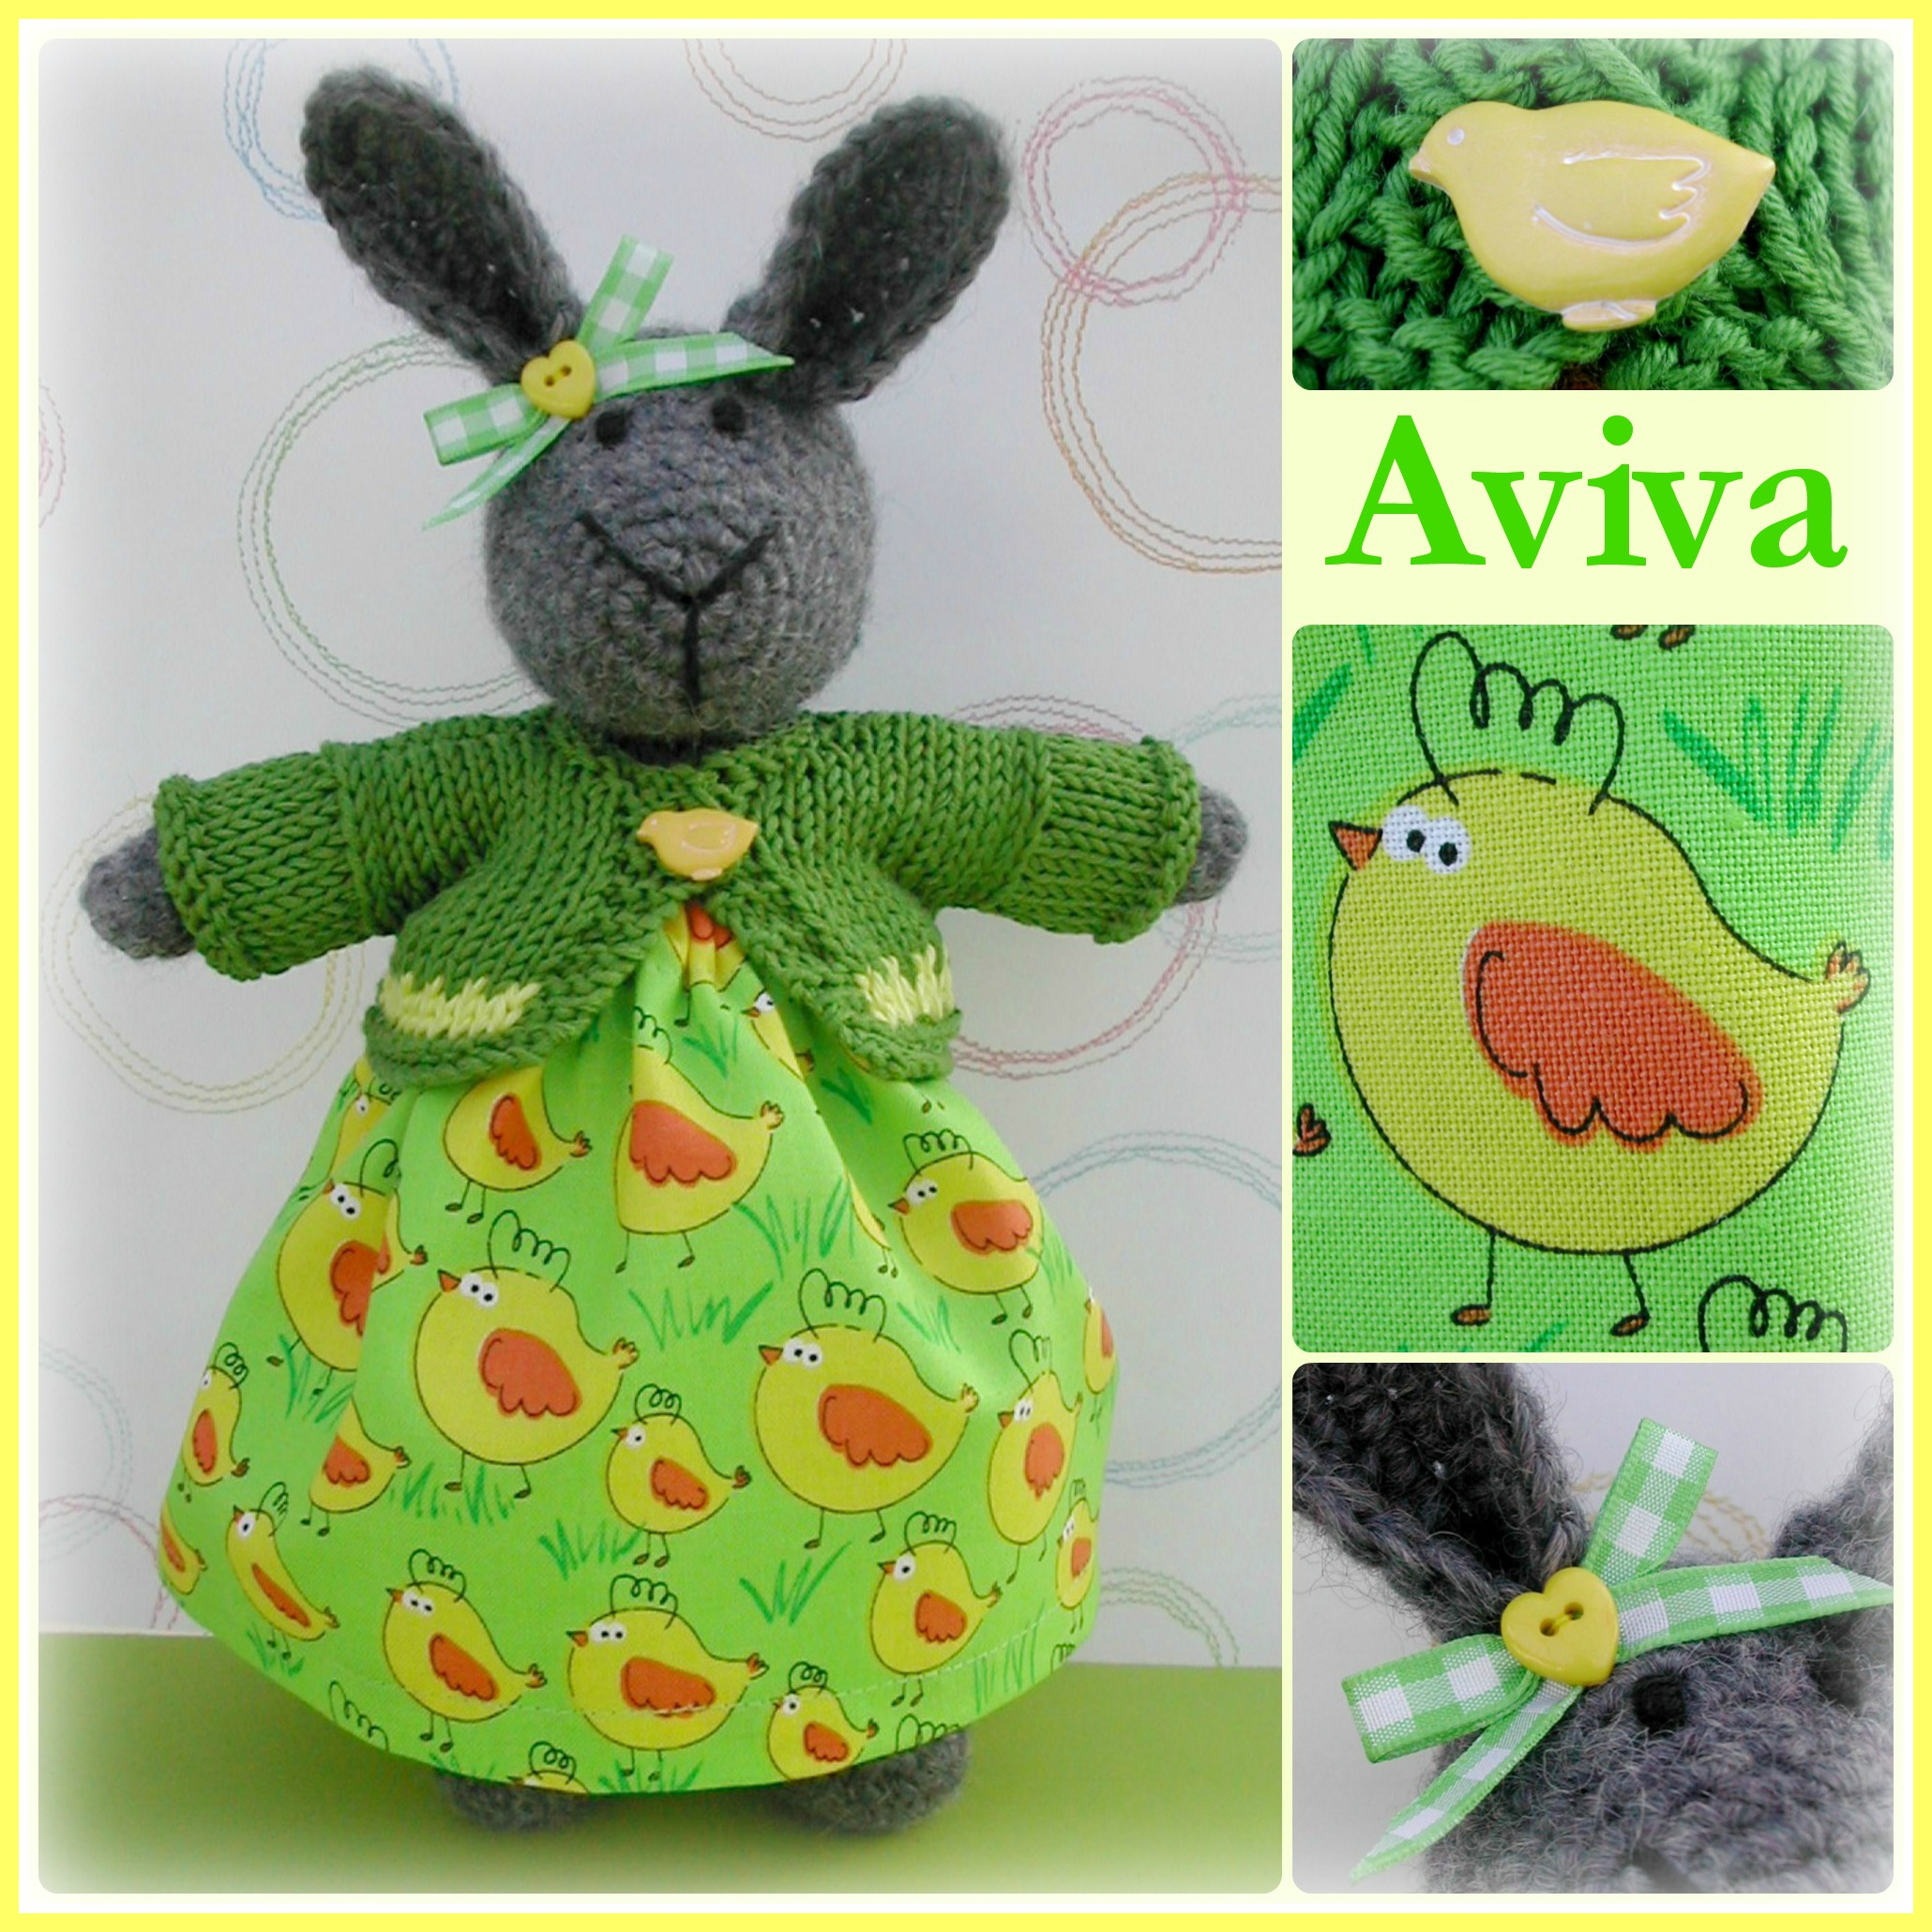 Aviva Collage